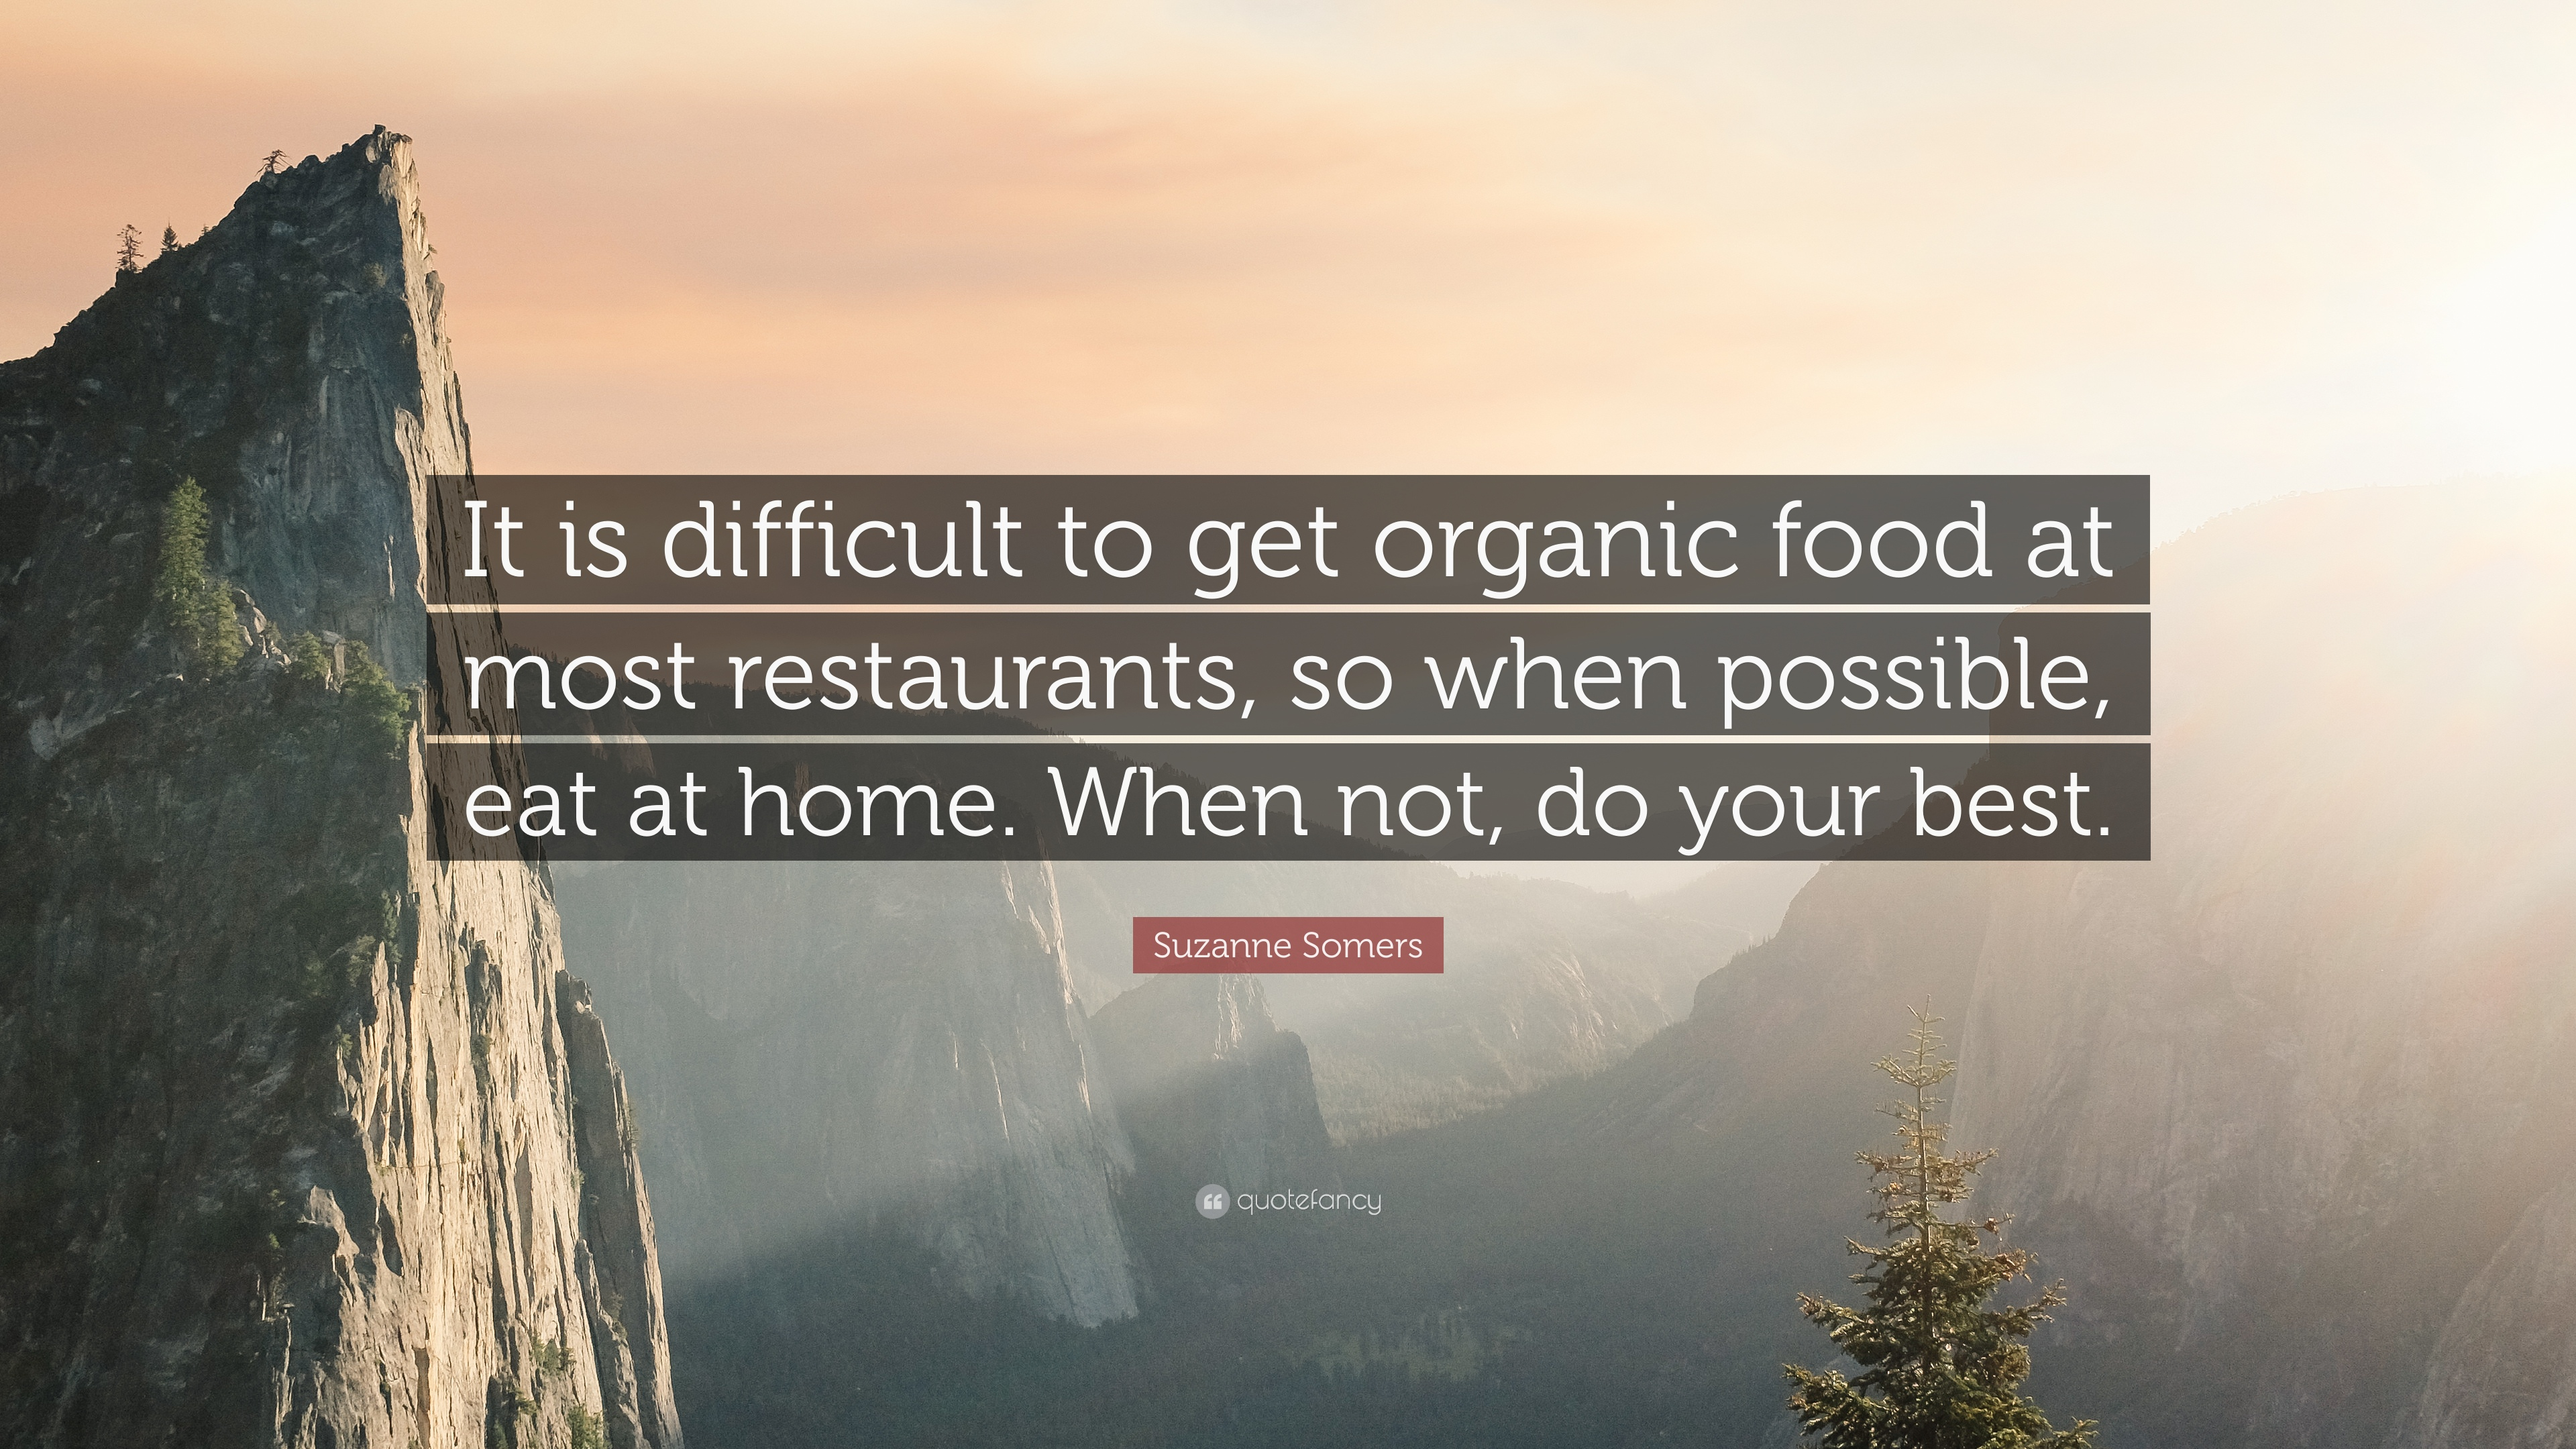 Suzanne Somers Quote: U201cIt Is Difficult To Get Organic Food At Most  Restaurants,